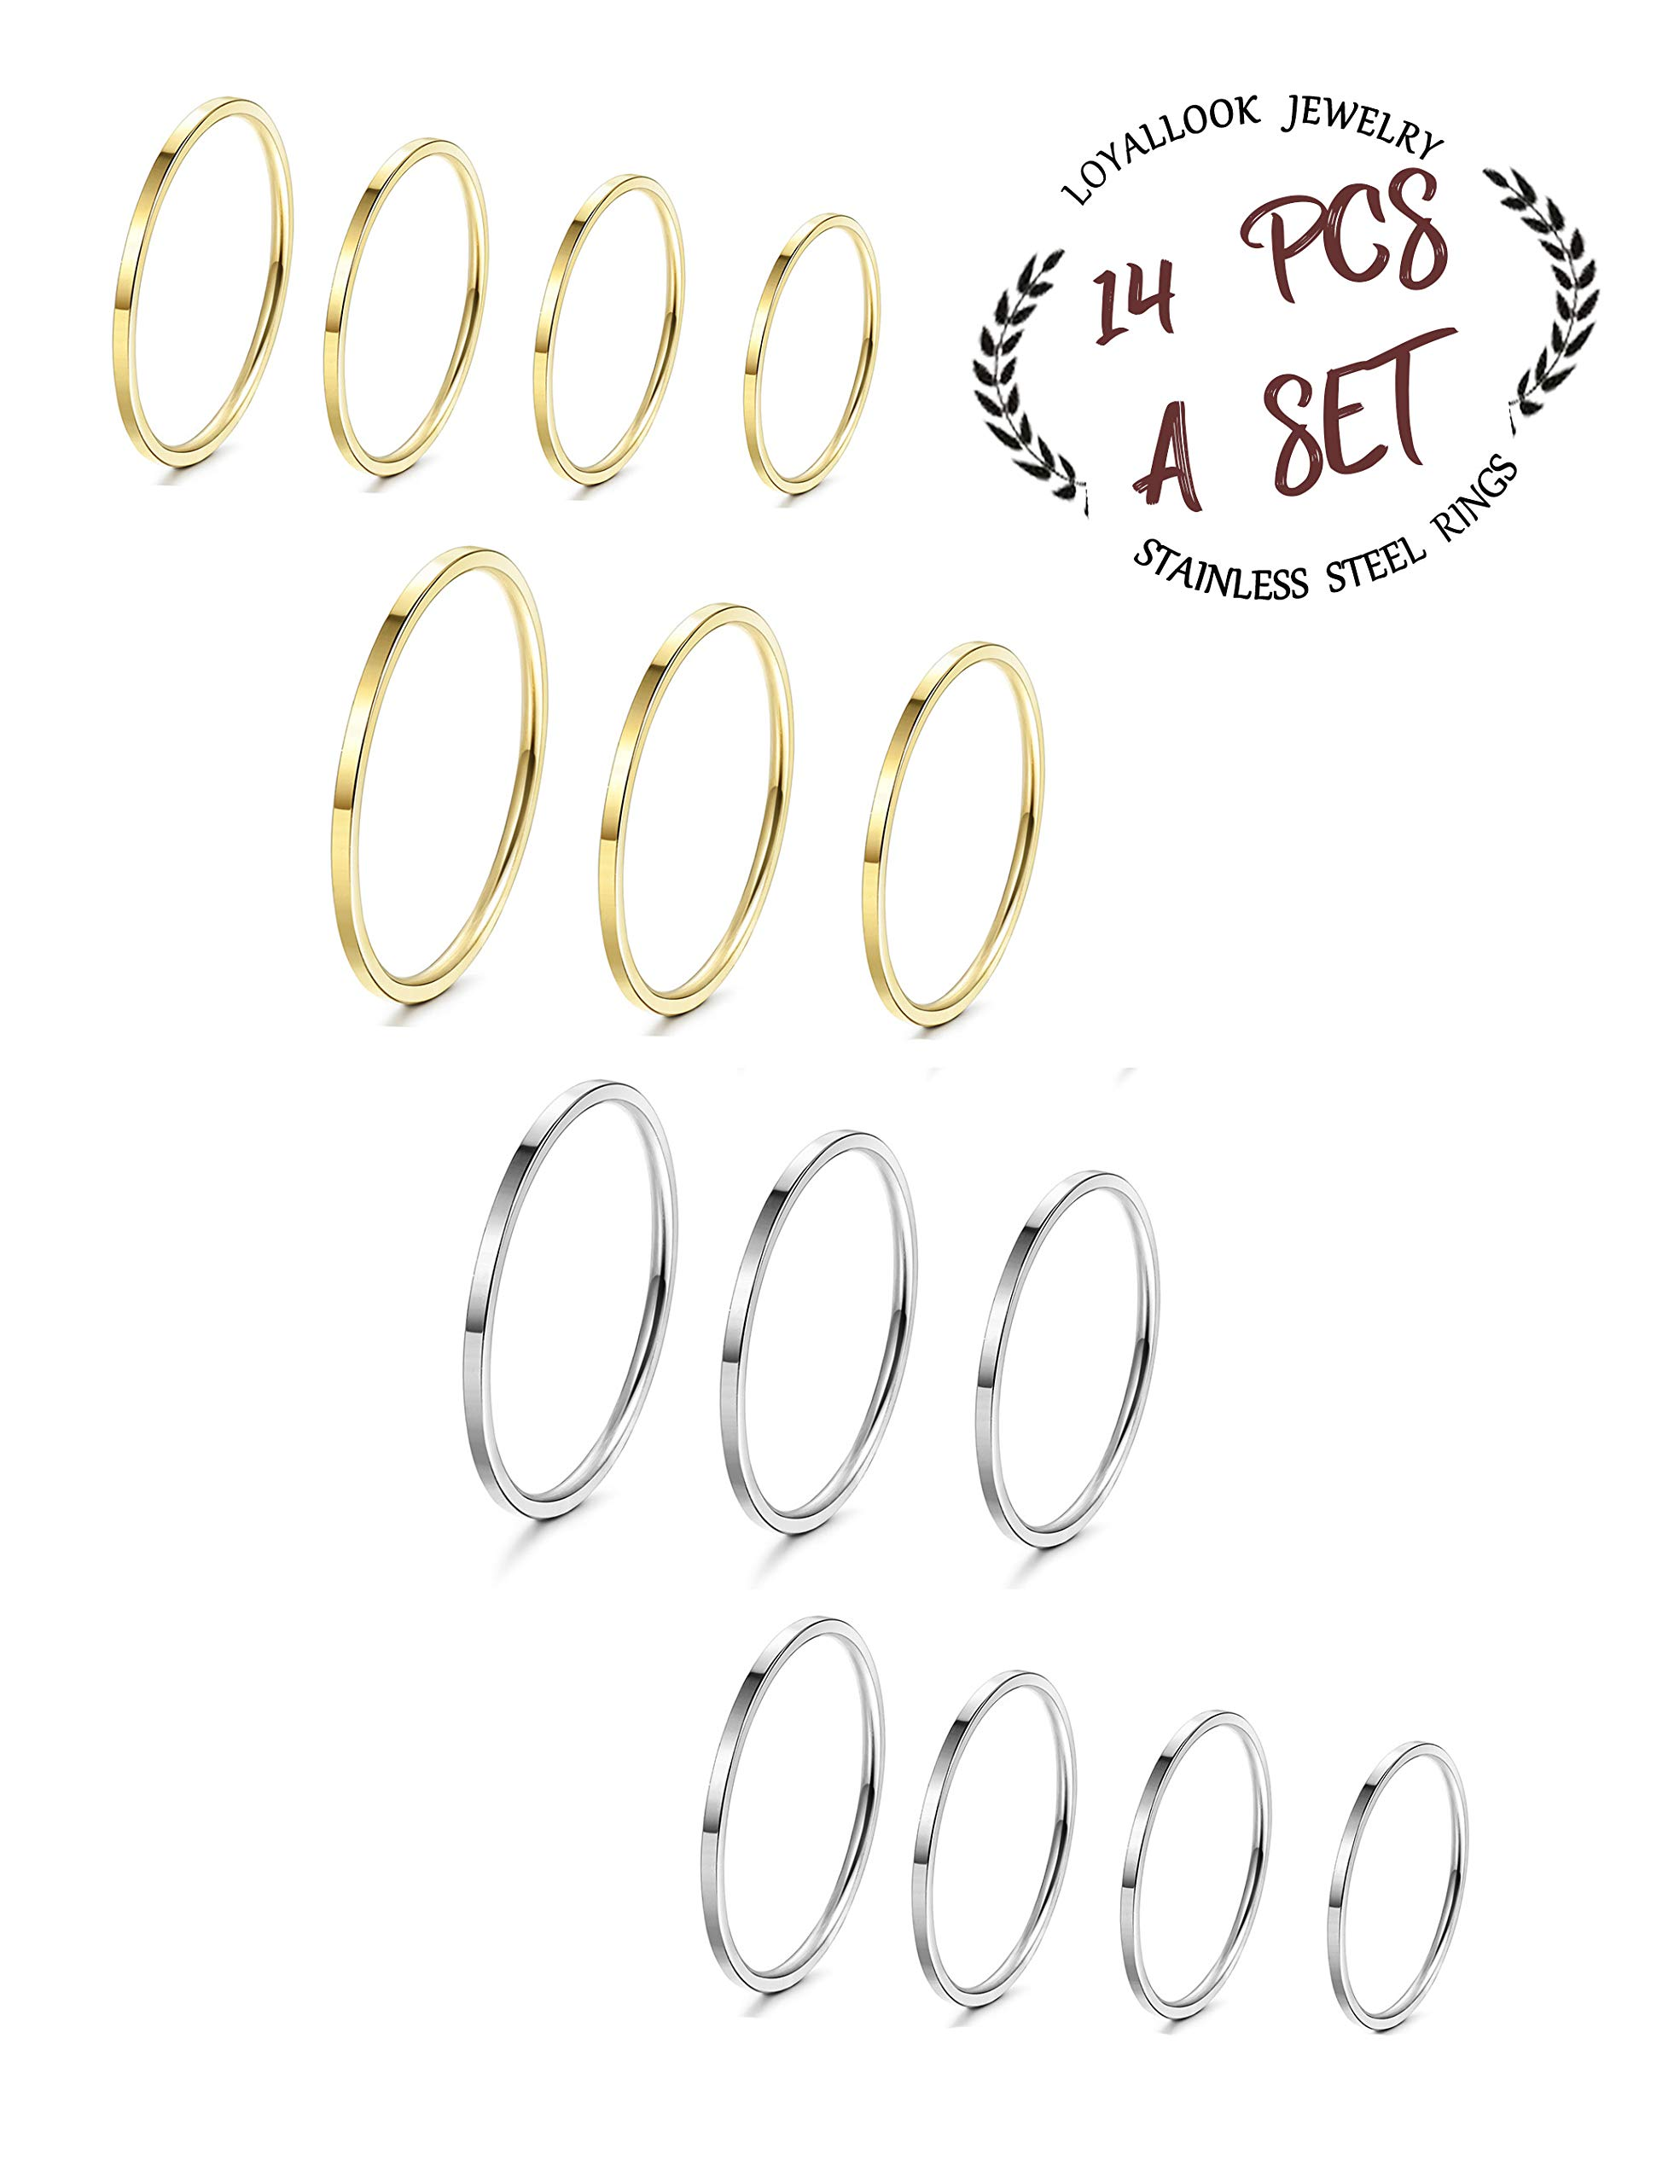 LOYALLOOK 14Pcs Thin Stacking Rings Stainless Steel 1MM Knuckle Midi Ring for Women Girls Silver-Tone Gold-Tone,Size 3-9